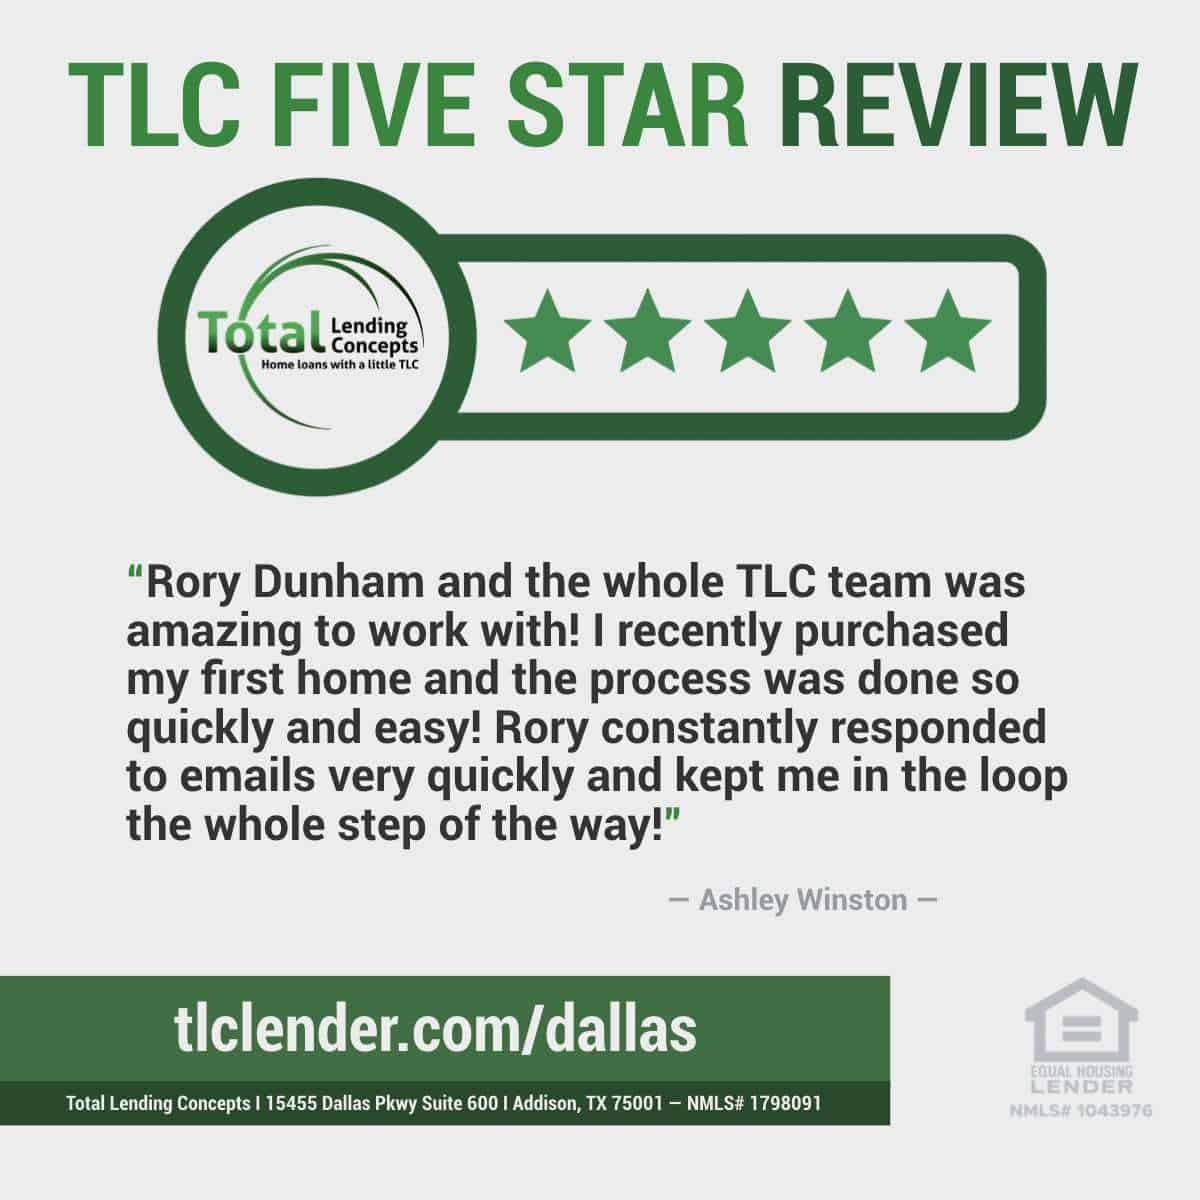 Total Lending Concepts Five Star Review Ashley Winston in Addison Texas for Rory Dunham Home Loan